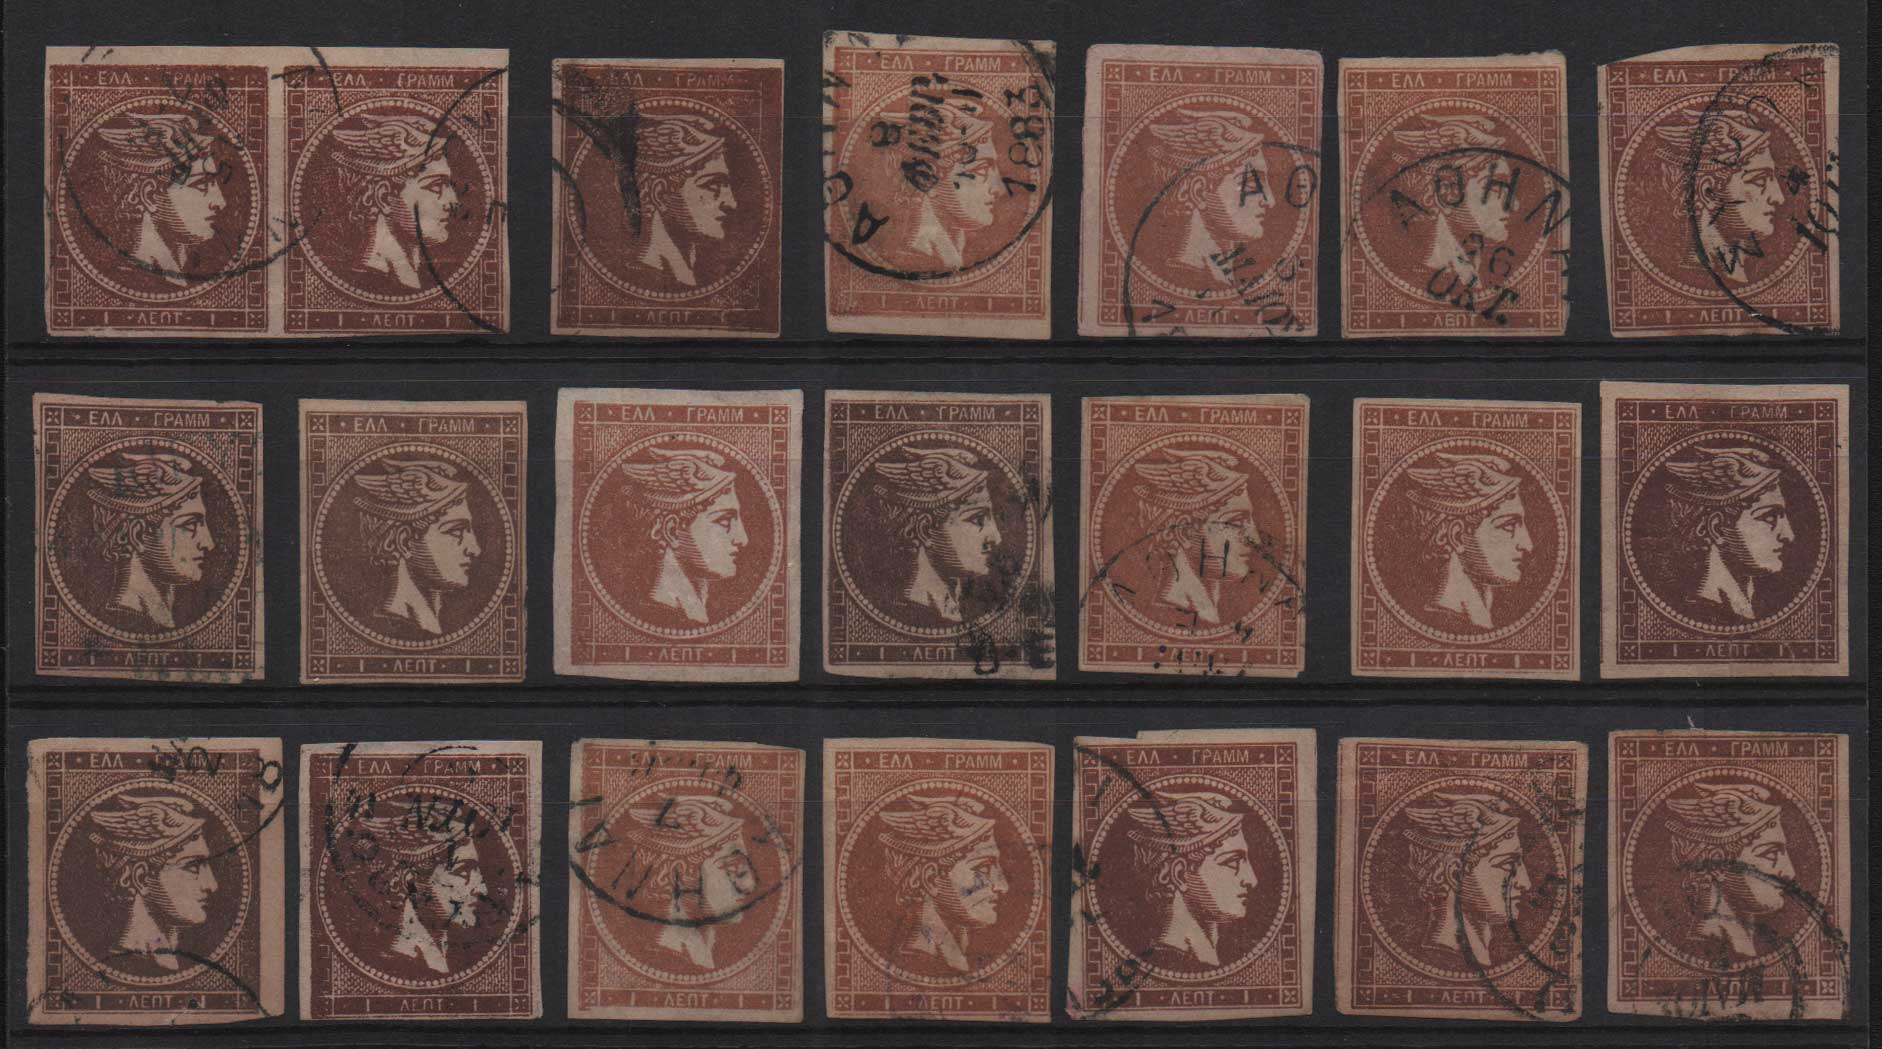 Lot 19 - -  LARGE HERMES HEAD large hermes head -  Athens Auctions Public Auction 69 General Stamp Sale